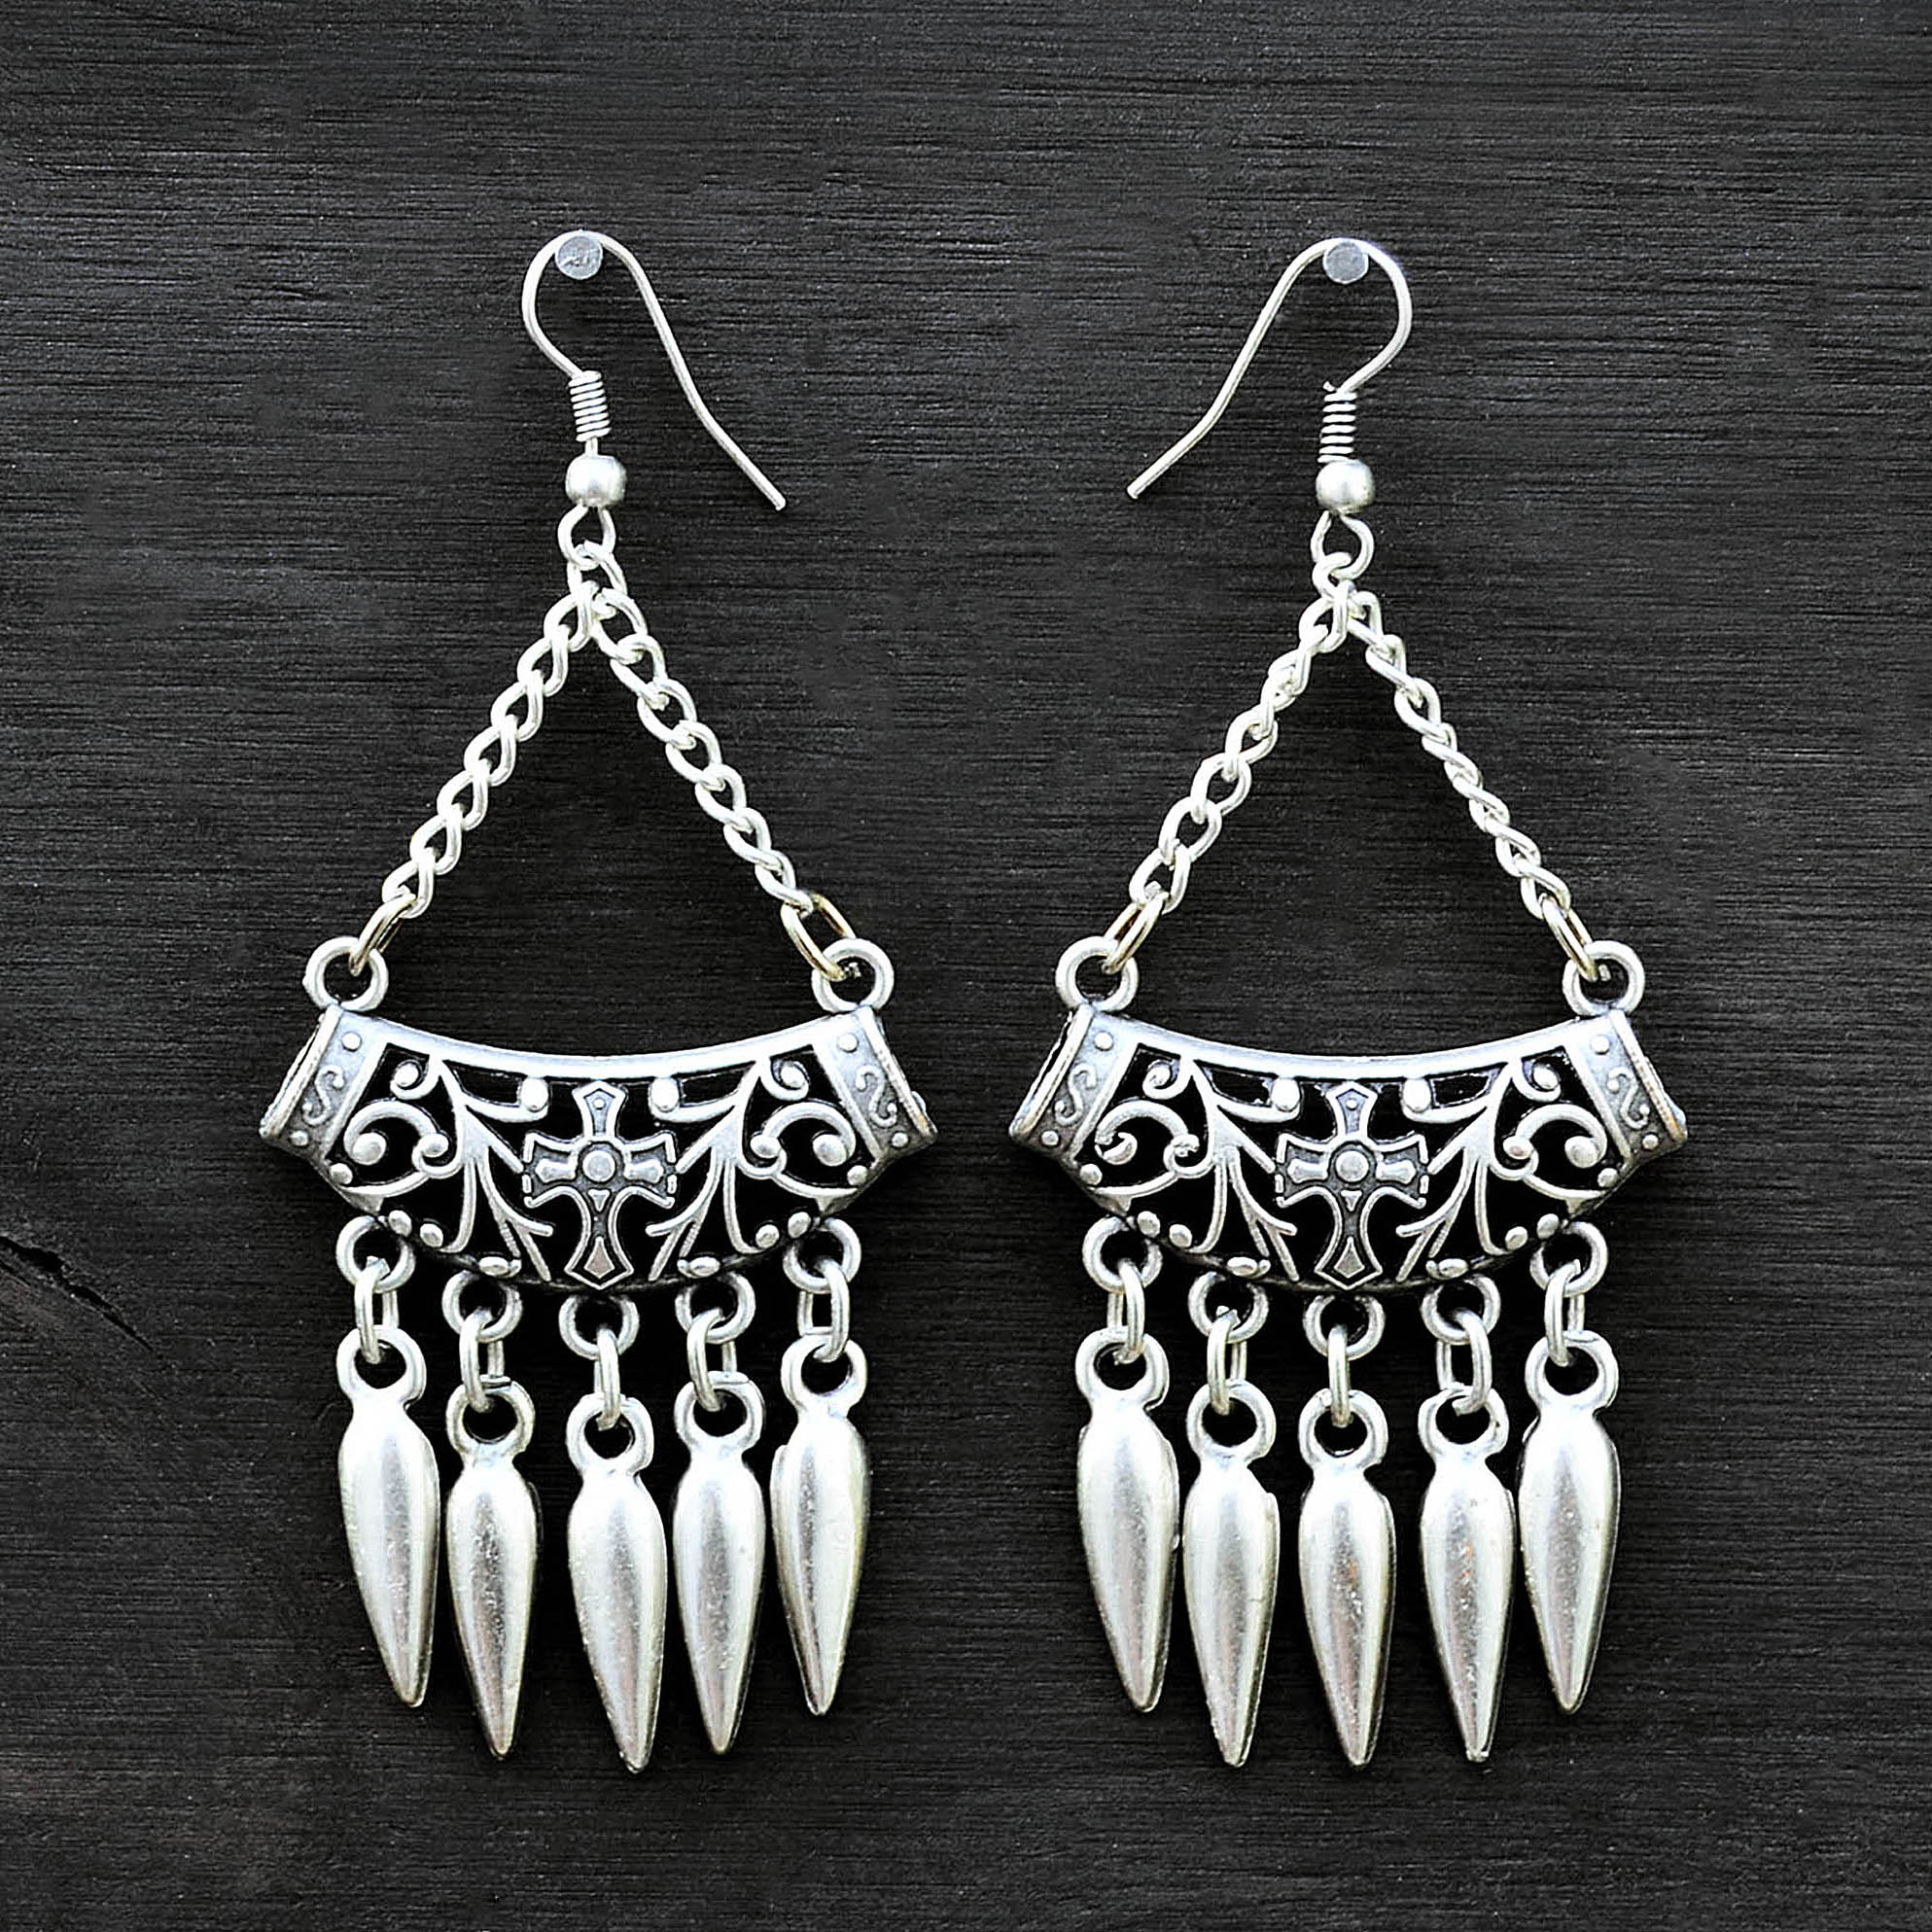 Tribal goth earrings